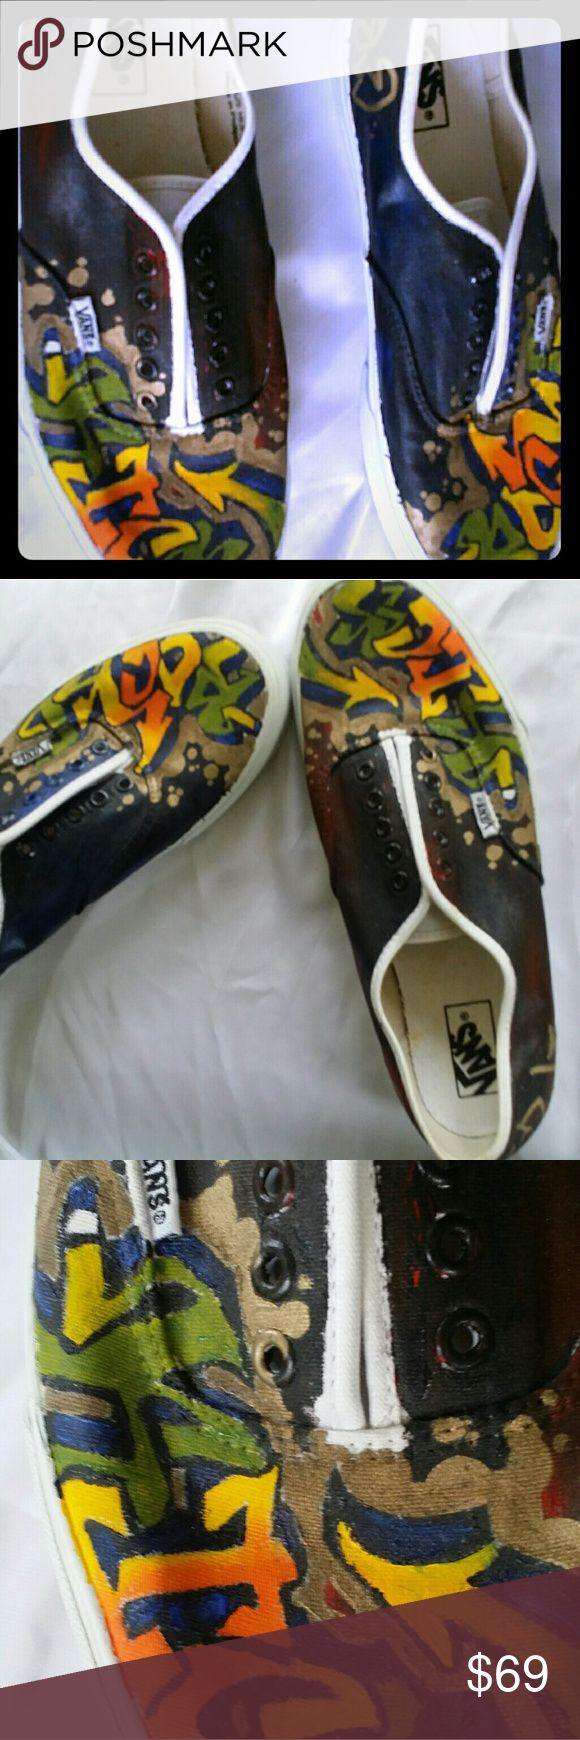 ON SALE TODAY. CUSTOM HANDPAINTED VANS Look new. Need shoe strings. CUSTOM on the go vans  for men. Vans Shoes Sneakers